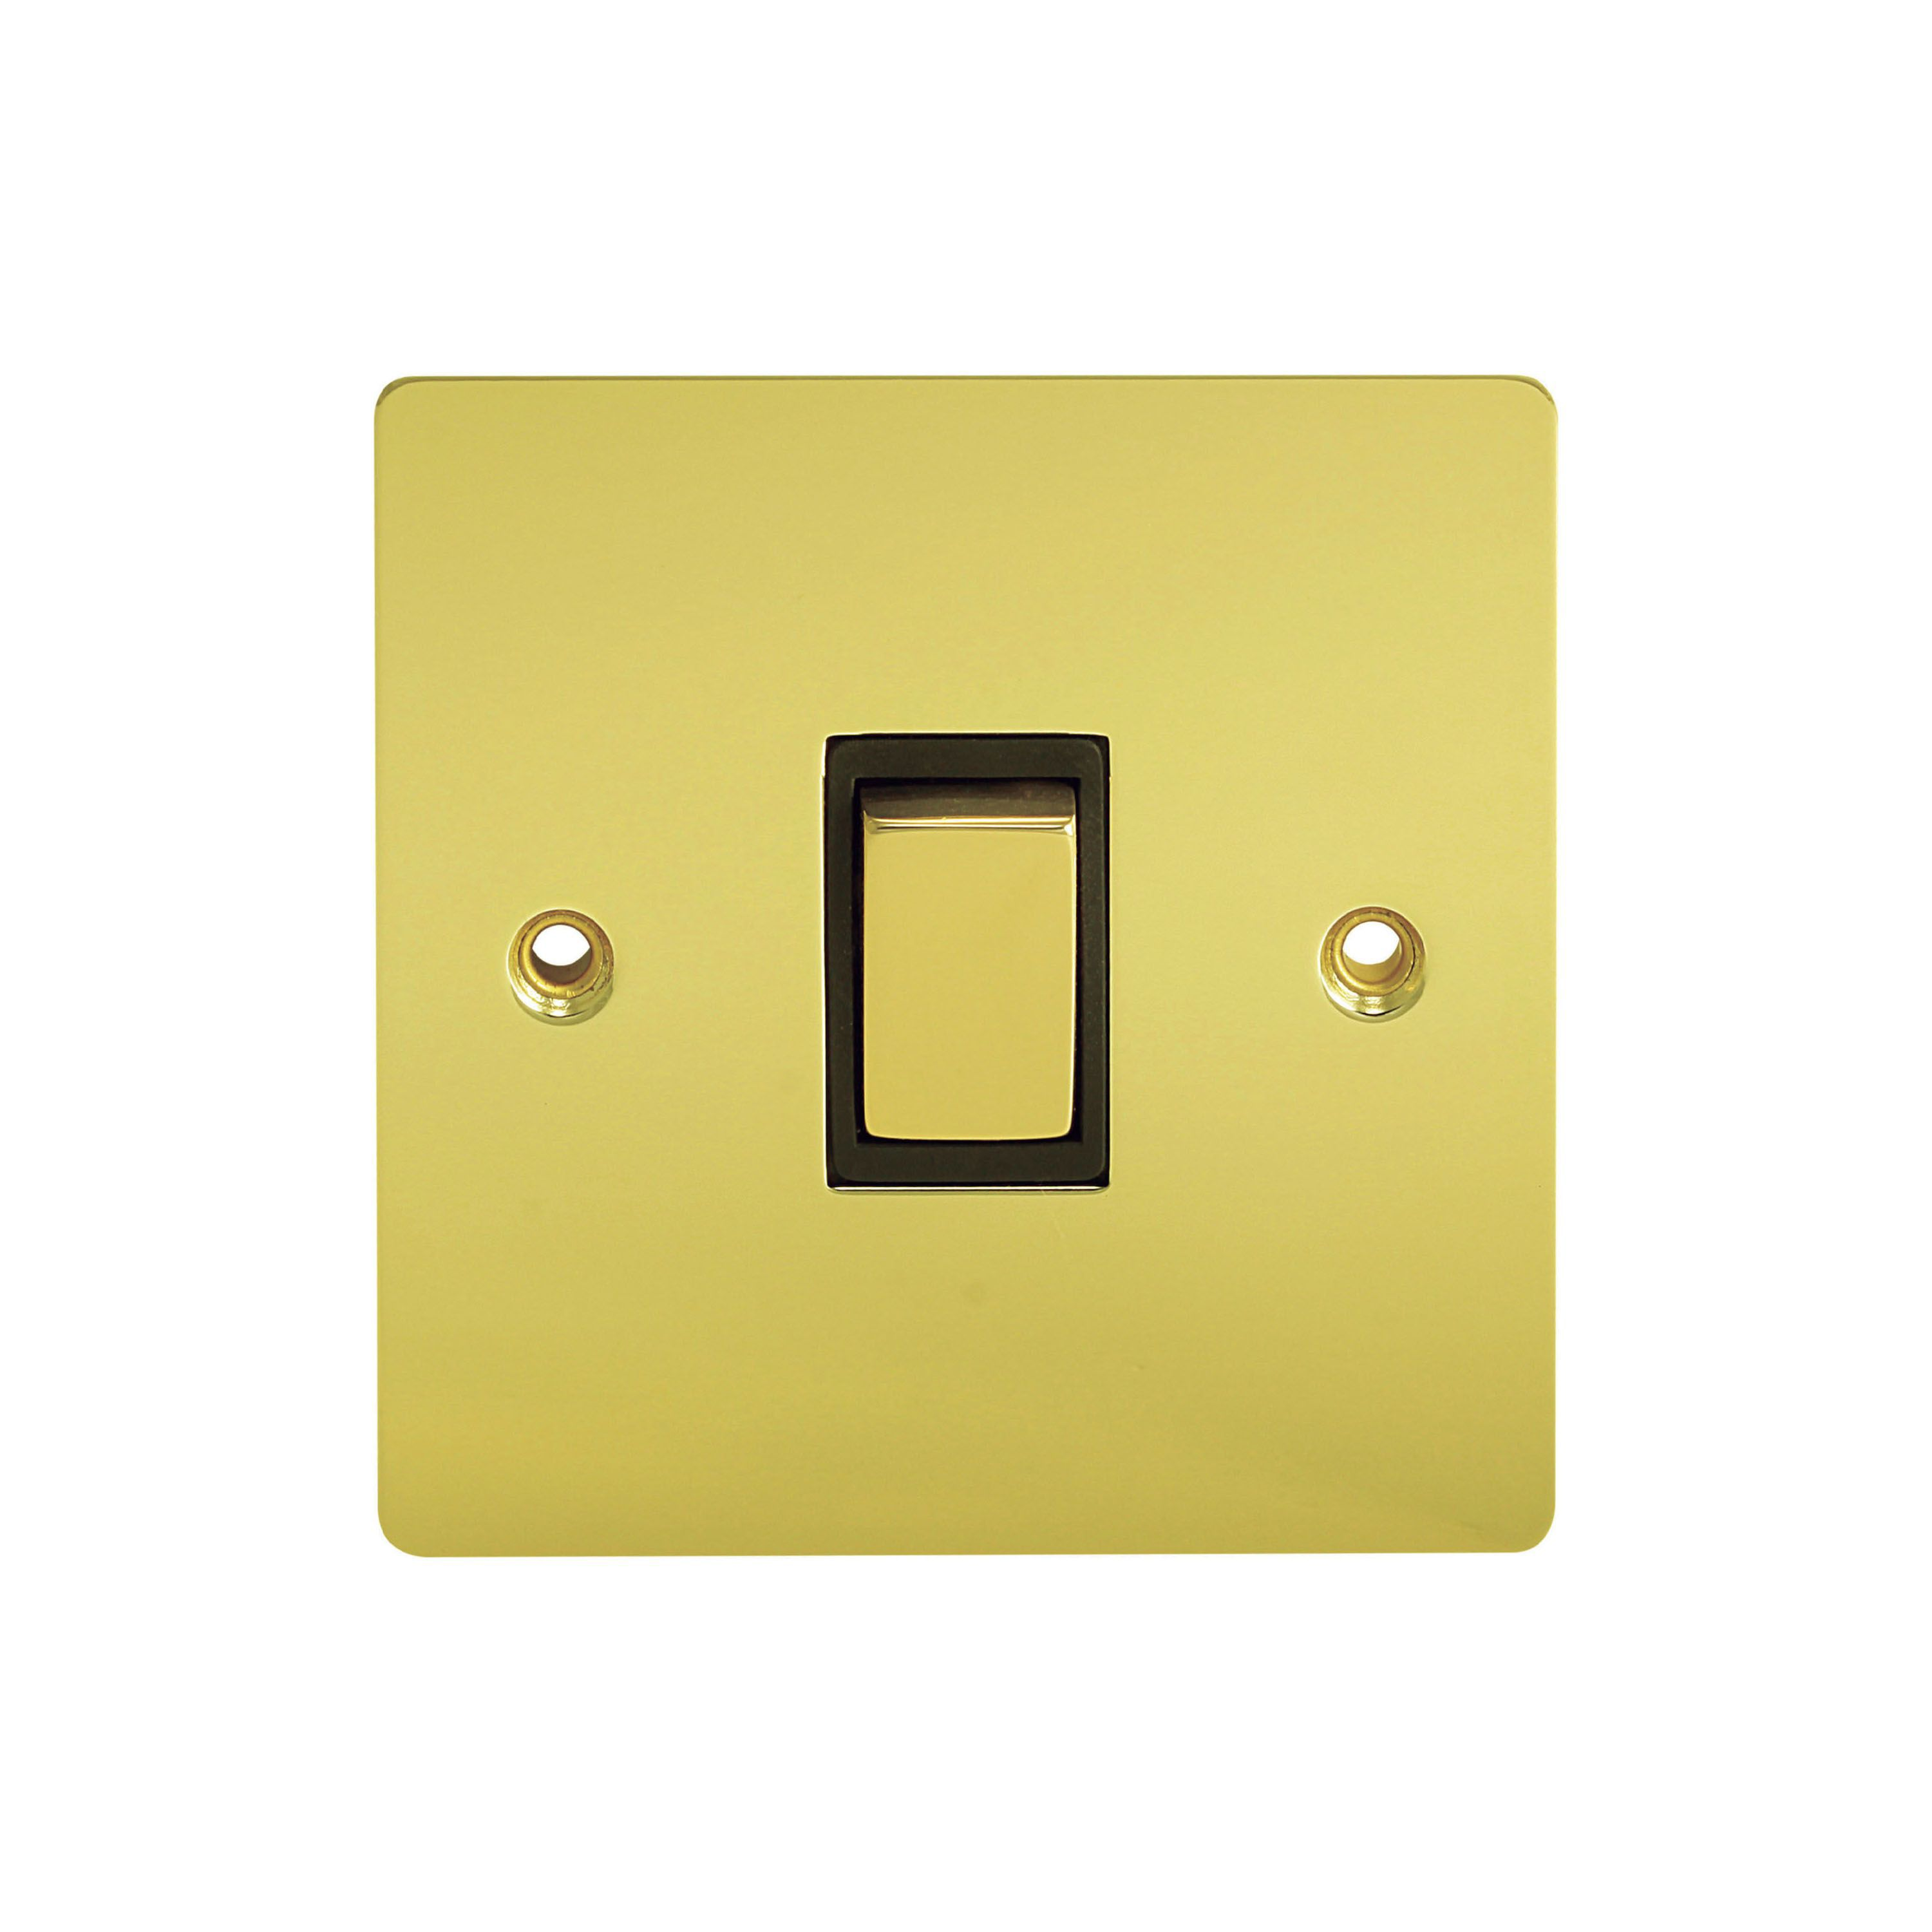 Holder 10a 2 Way Single Polished Brass Light Switch Departments Wiring Spur Diy At Bq